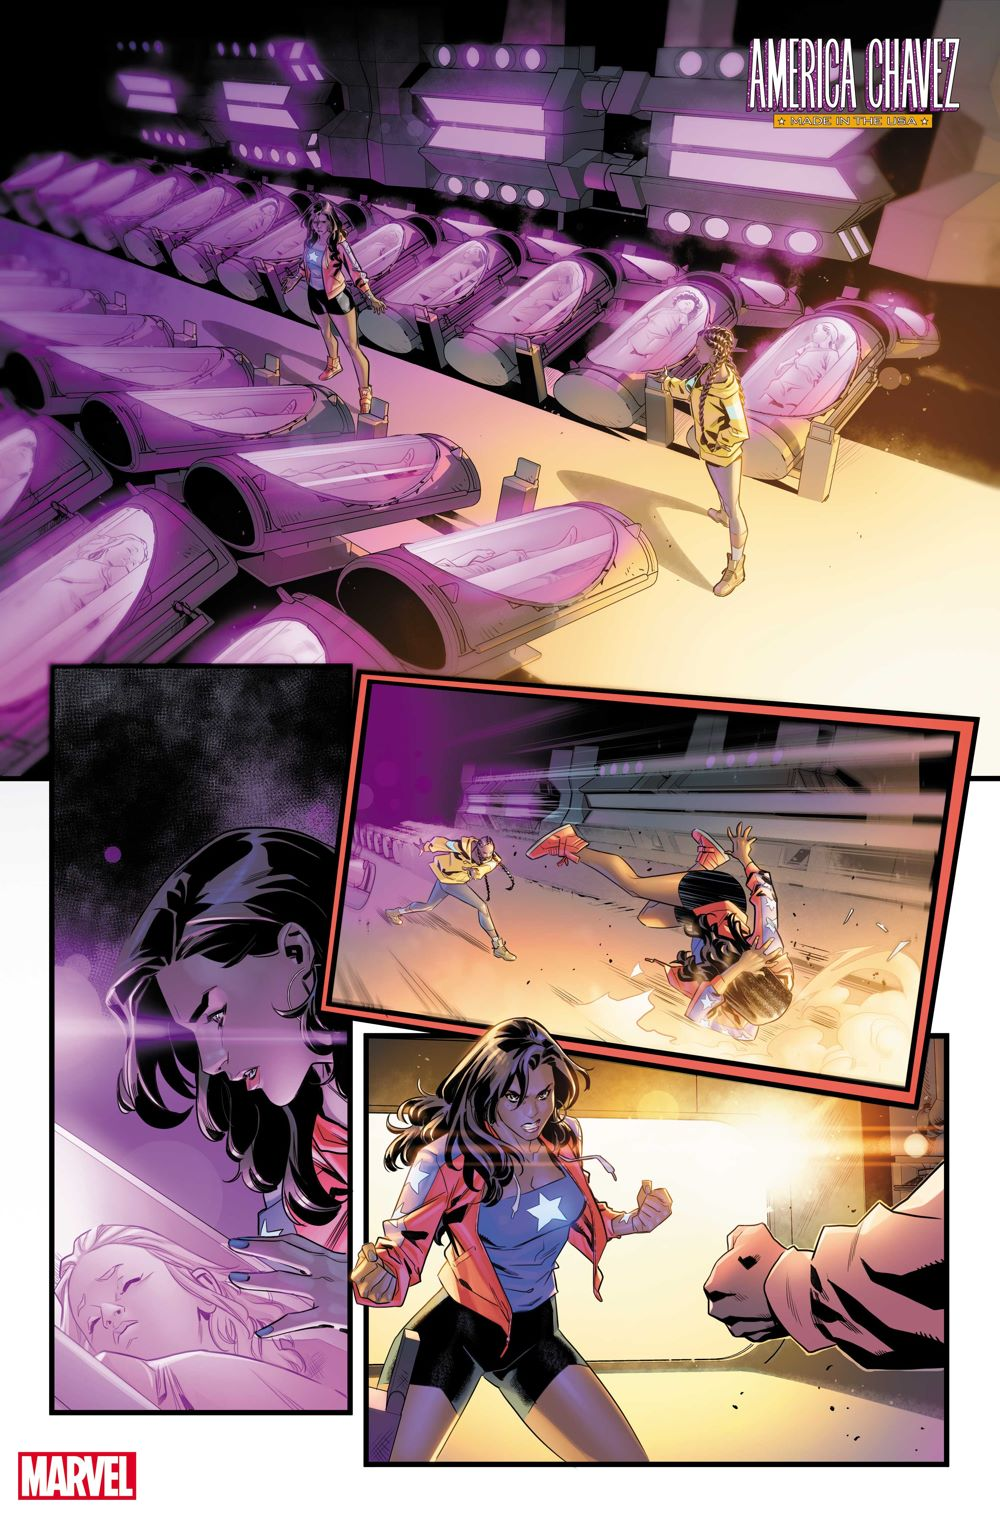 AMERCHAVEZUSA2021004_1 First Look at AMERICA CHAVEZ: MADE IN THE USA #4 from Marvel Comics